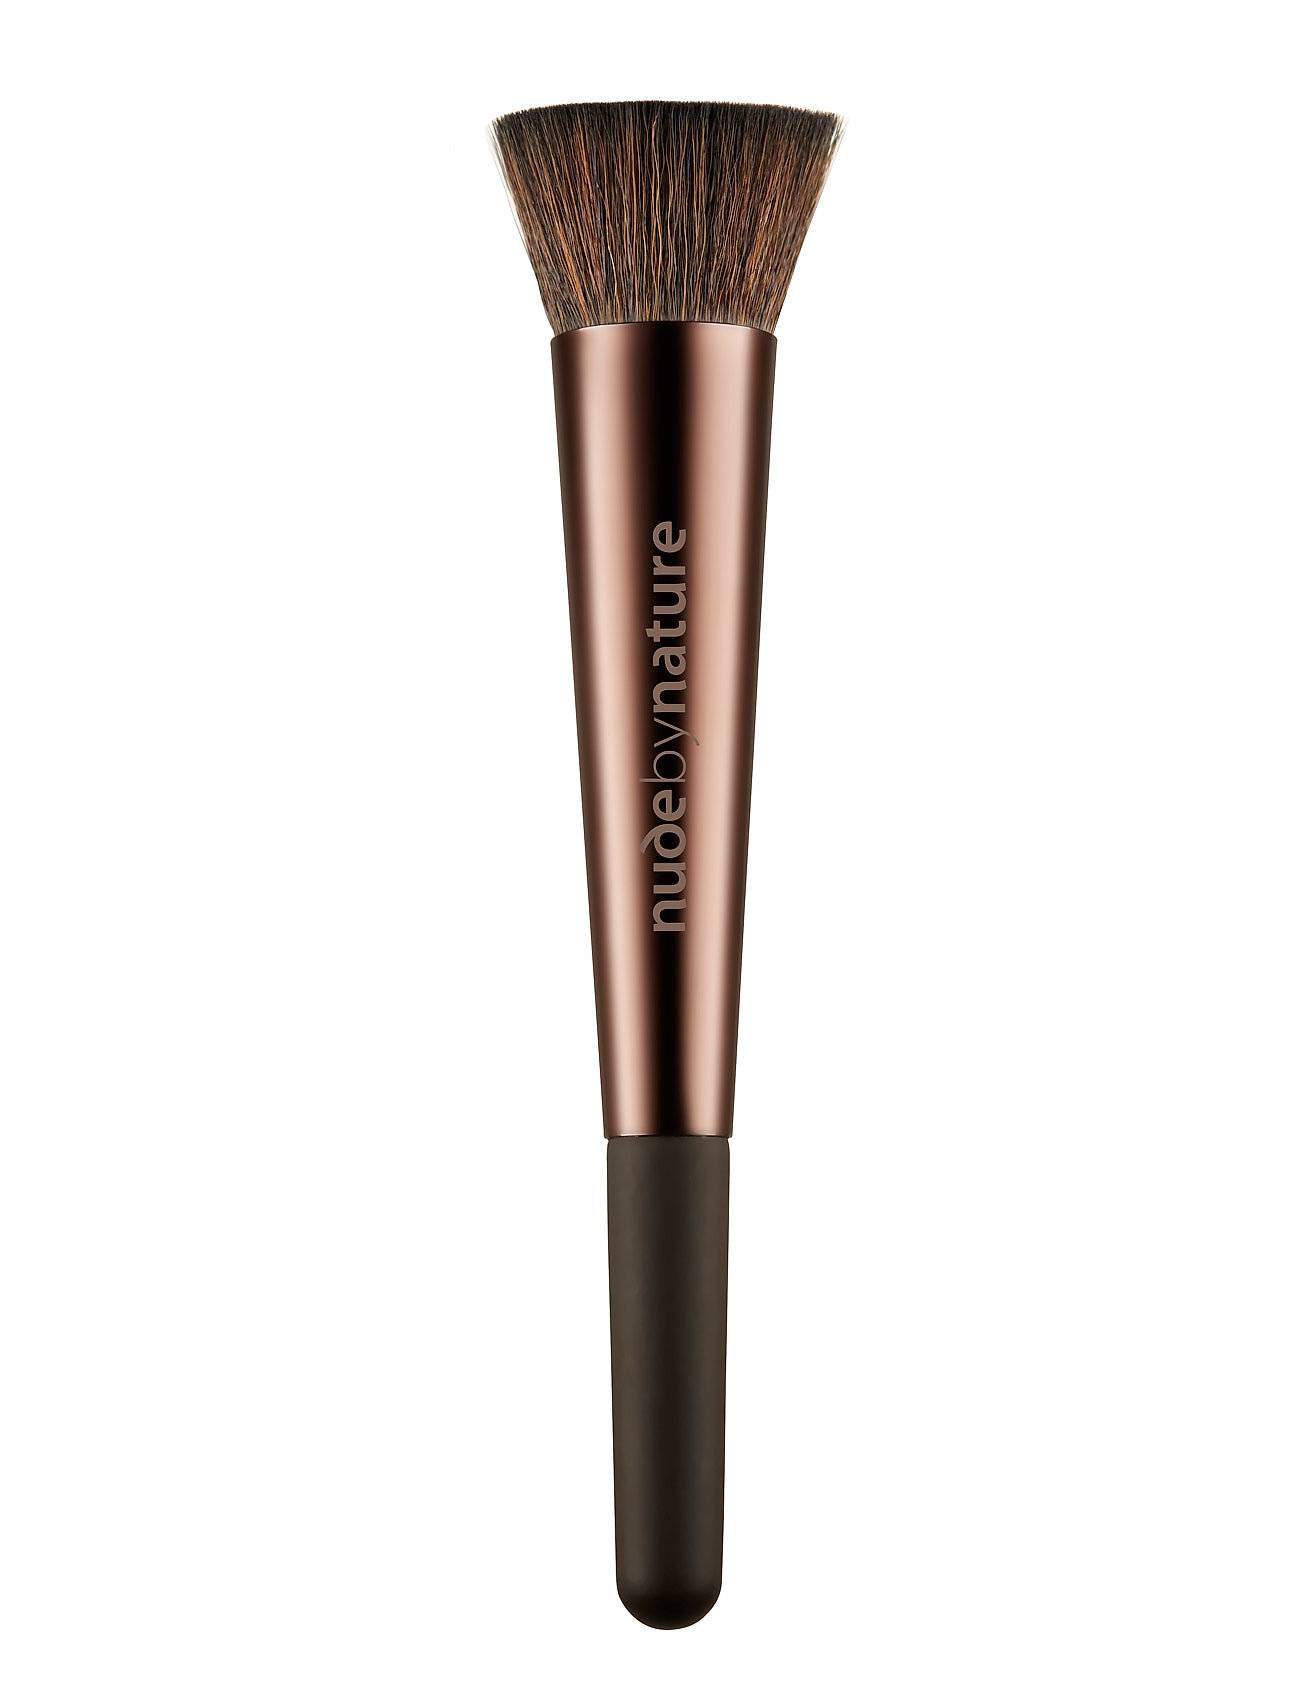 Nude by Nature Brushes 08 Buffing Brush Beauty WOMEN Makeup Makeup Brushes Face Brushes Nude Nude By Nature